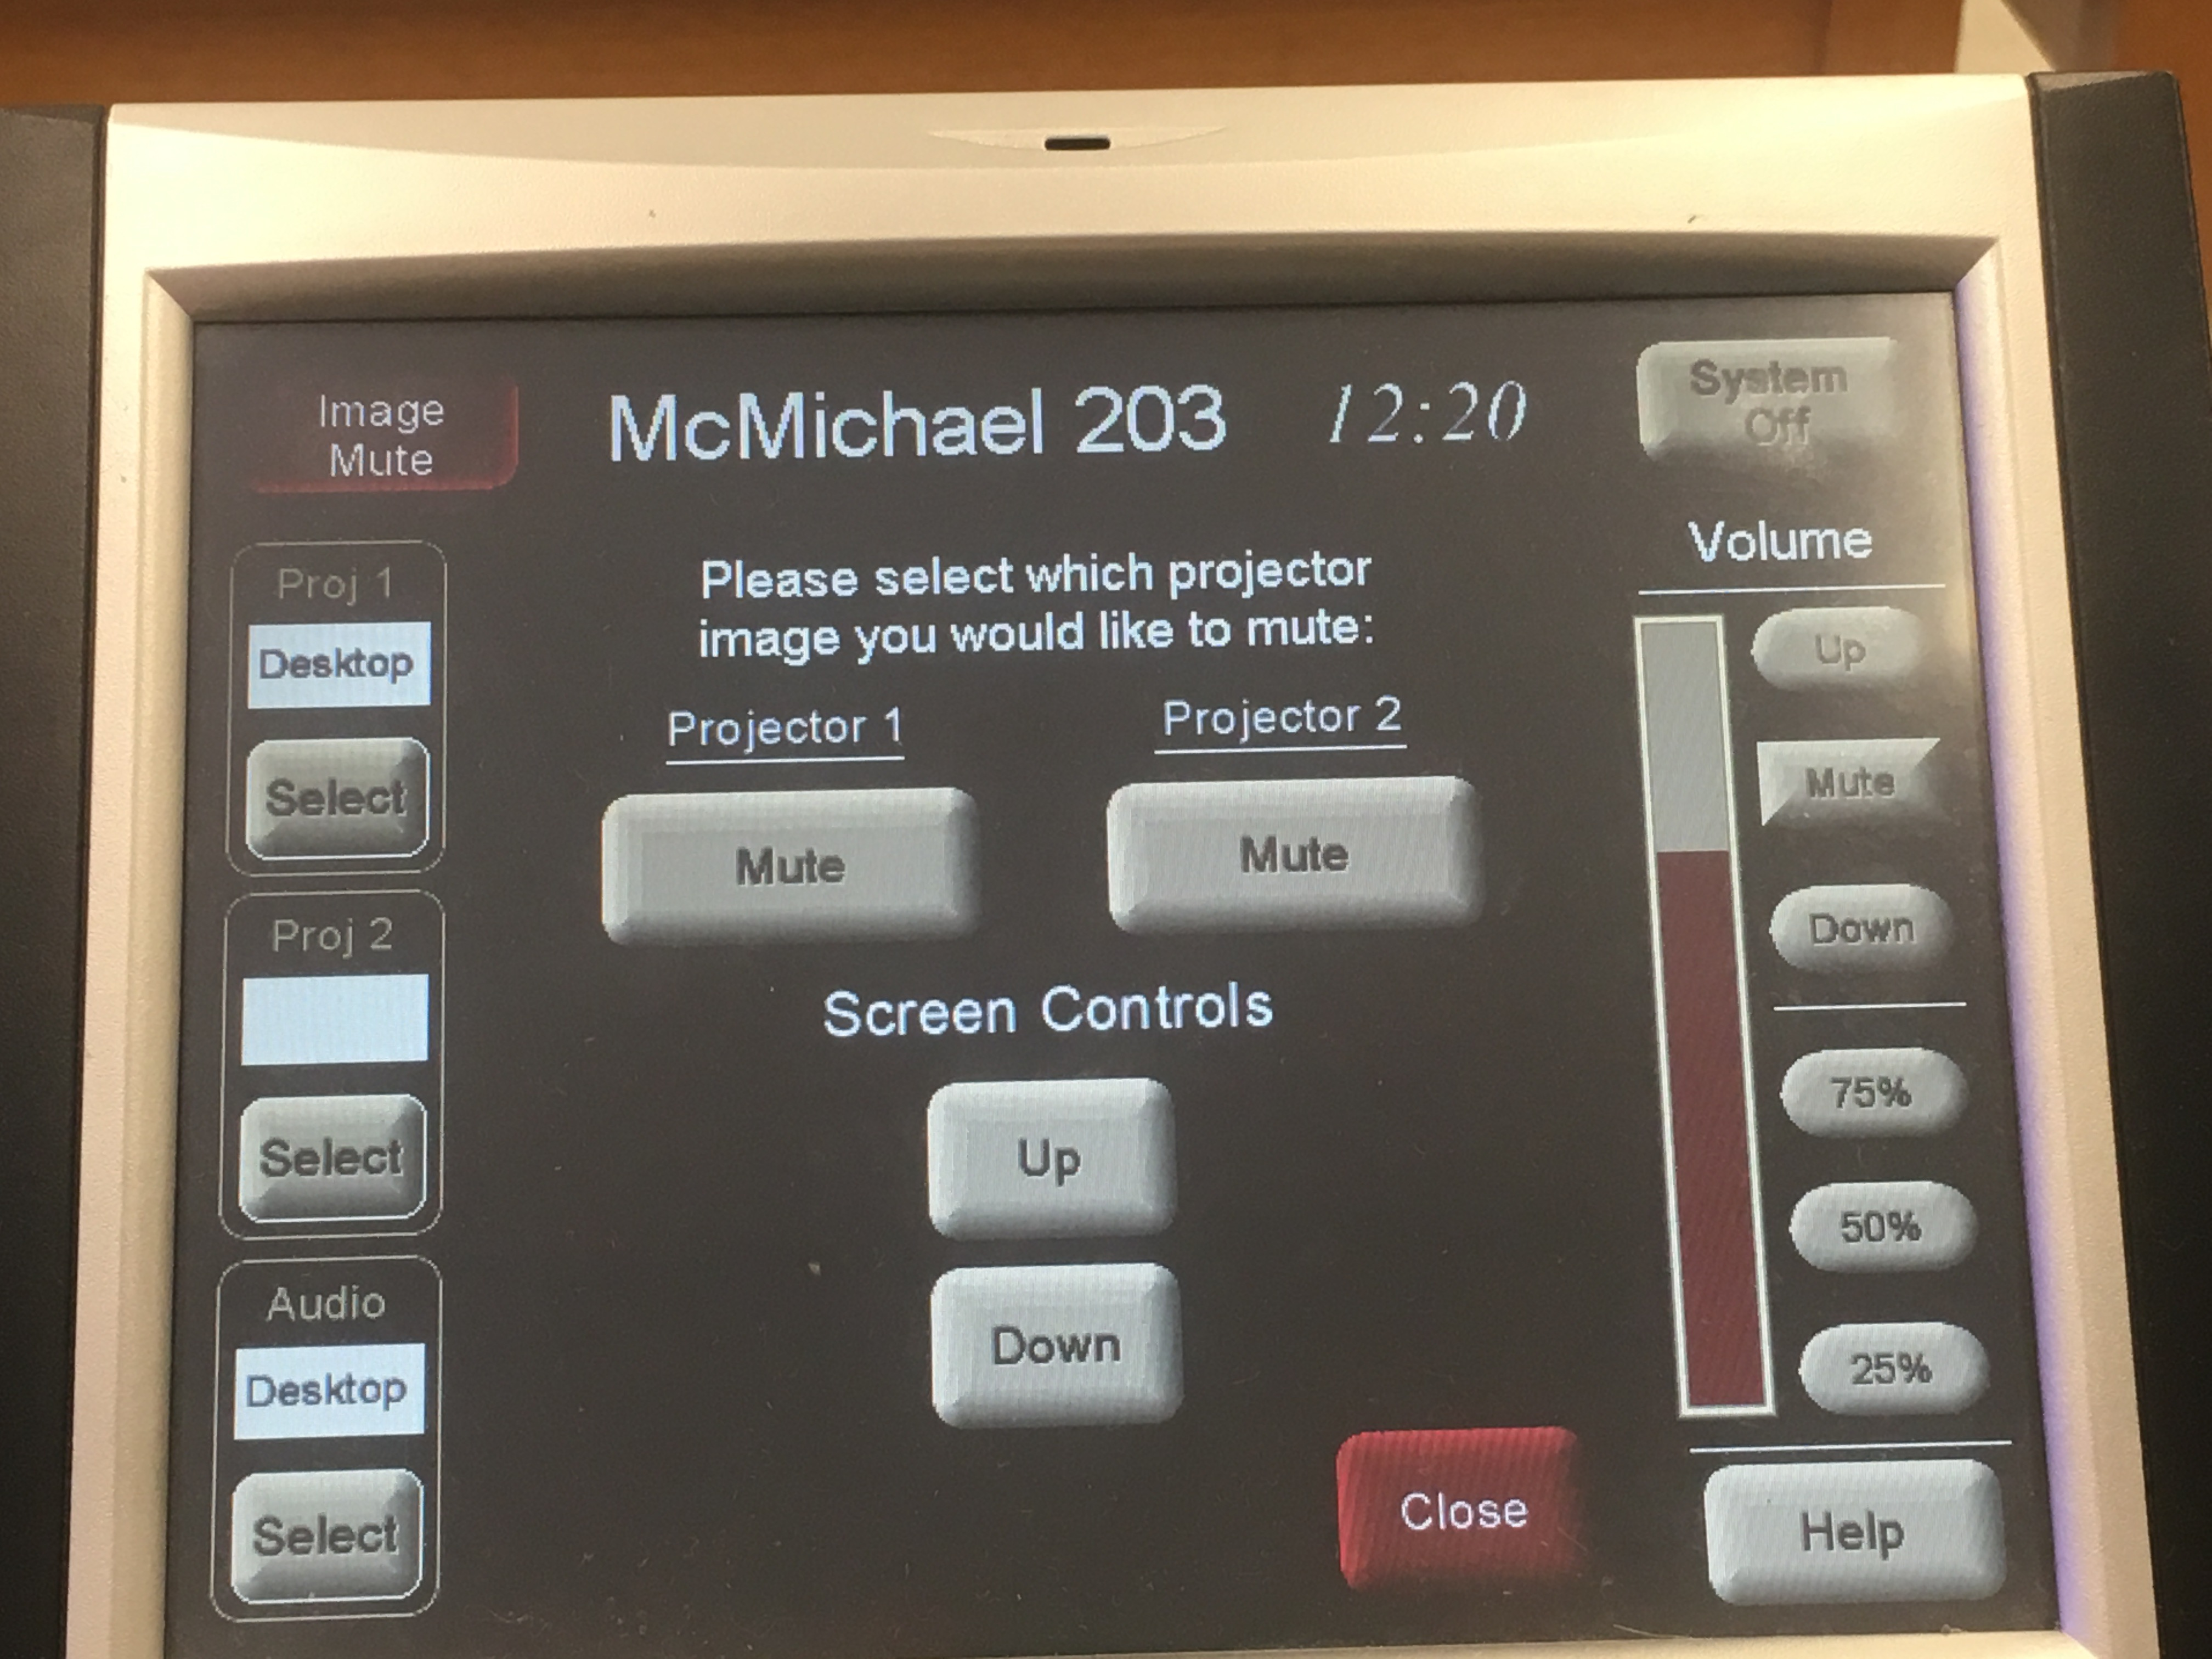 Photo of crestron control touch panel with the option to mute the projector 1 or projector 2 as well as raise and lower the screen